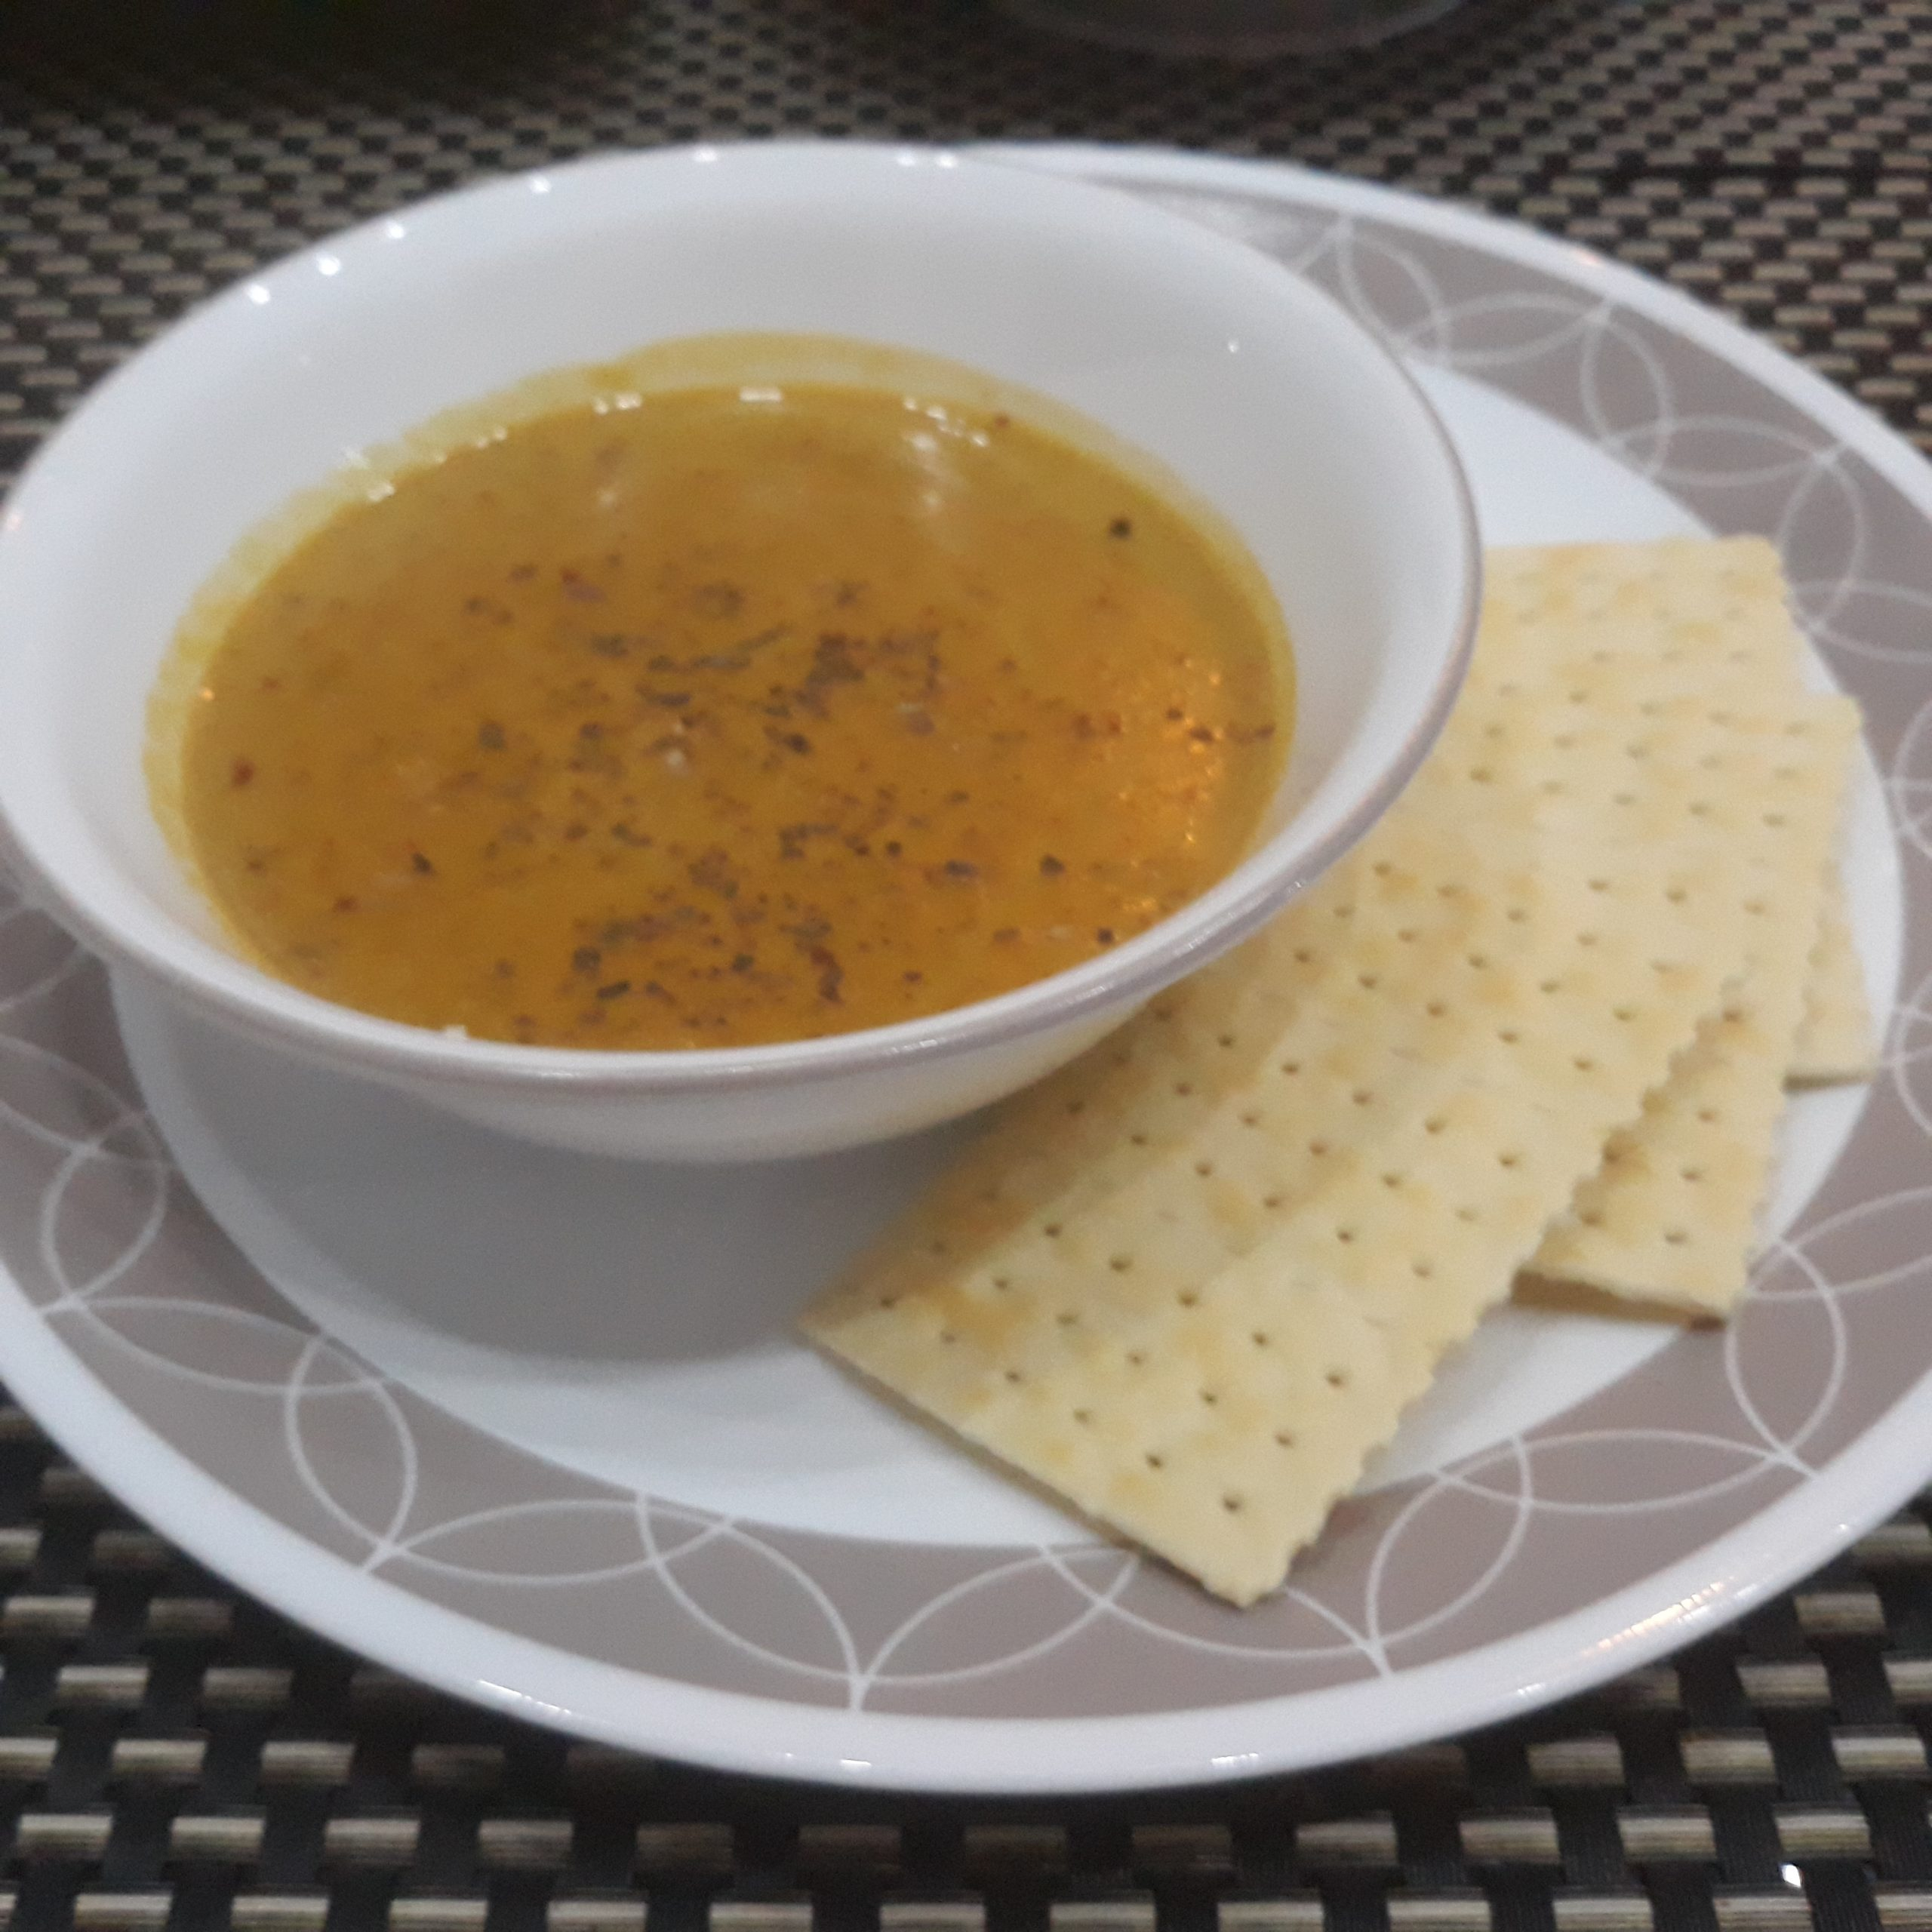 A bowl of kalabasa soup with some Sky Flakes crackers on the side.